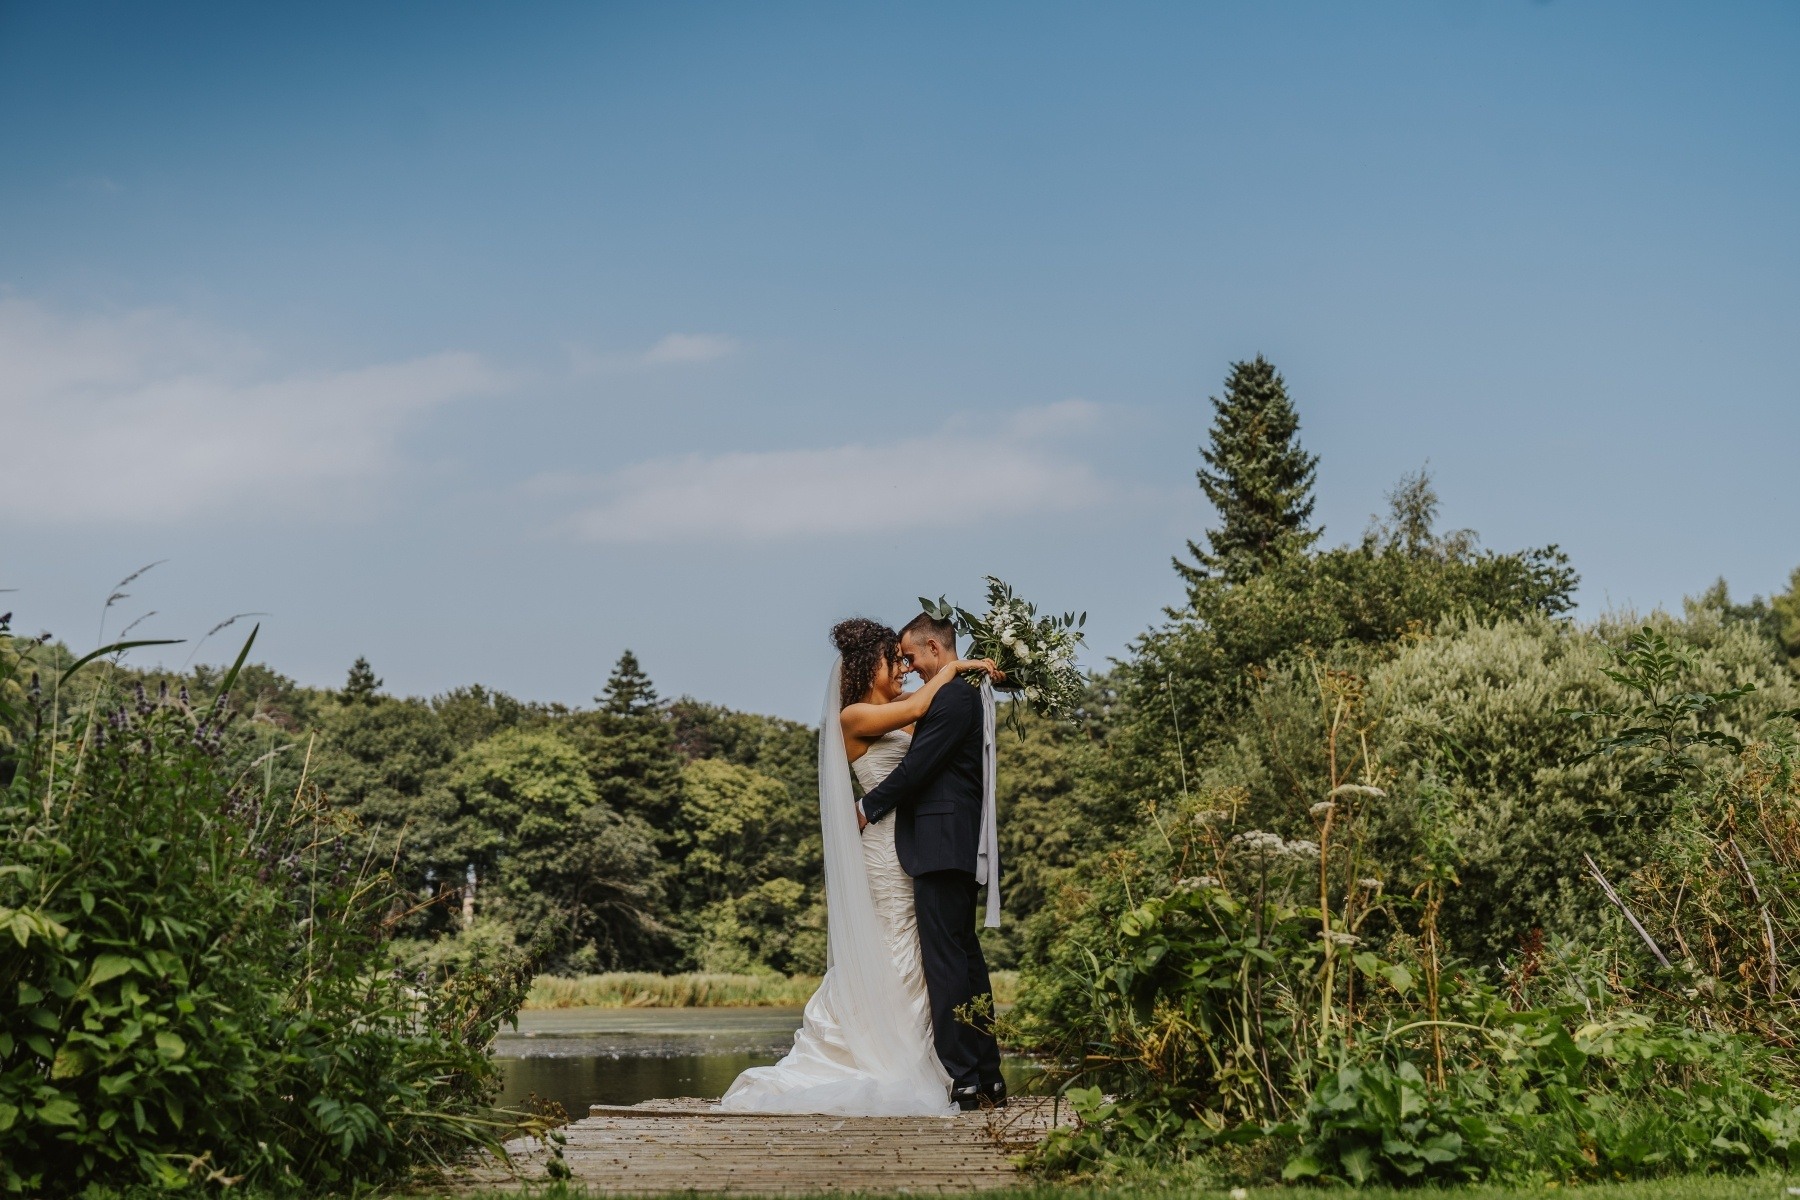 Doxford Barns - Belle Bridal Venue Guest List - Image by David West Photography